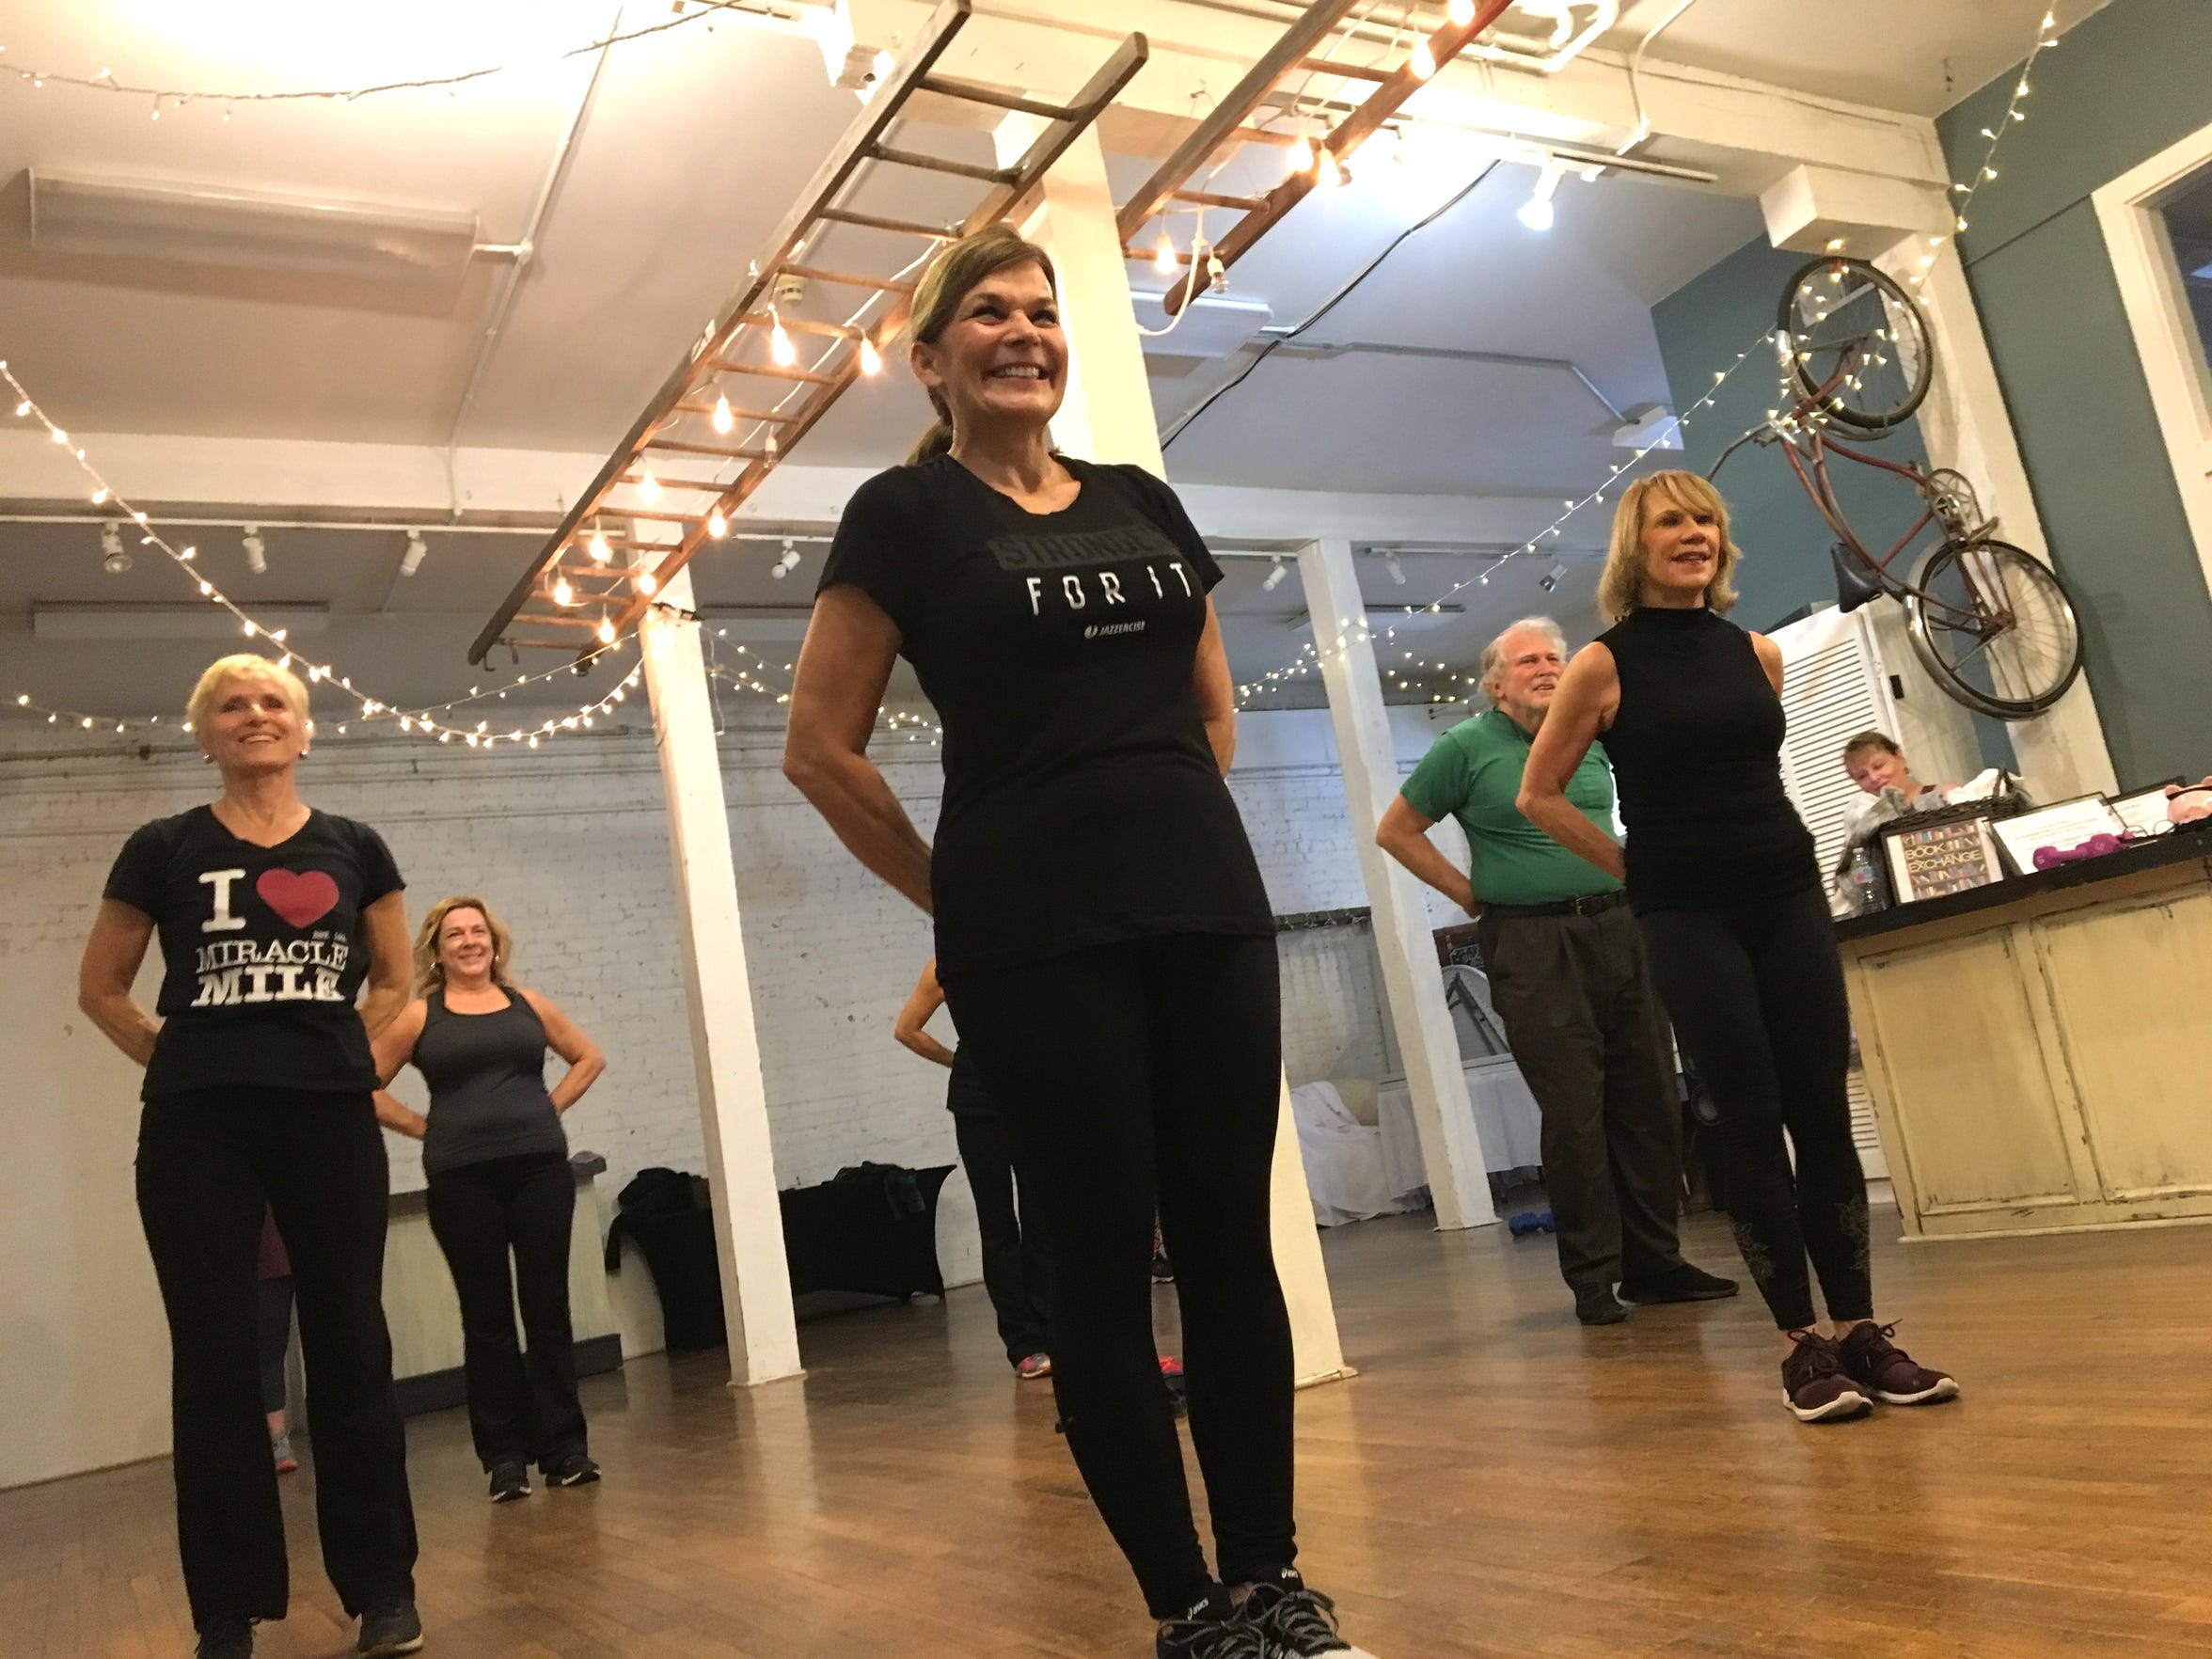 Photographed at Jazzercise Staunton at Queen City Place on Friday, Dec. 14, 2018, about a dozen people can't wait to get to Maryann Acuff's Jazzercise class. An eclectic group, everyone has come to feel like family.